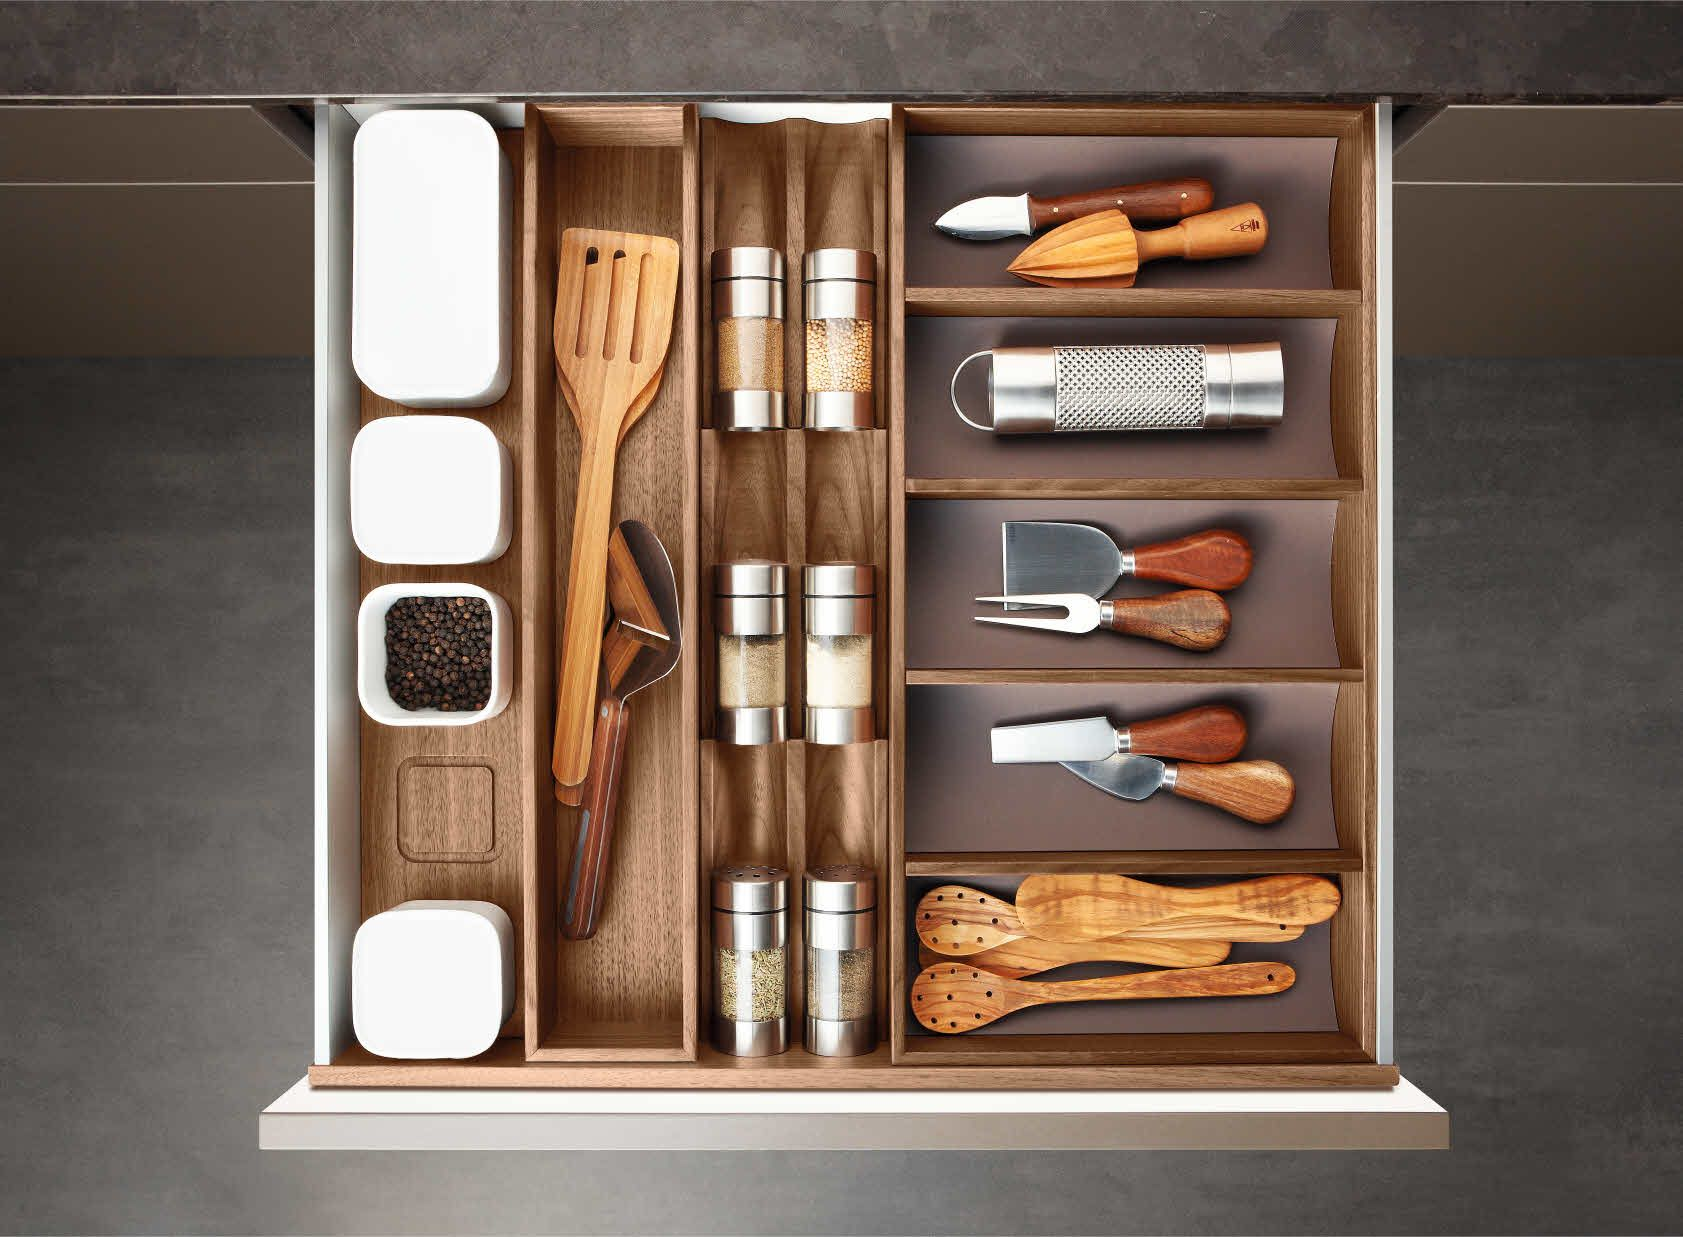 Kitchen drawer inserts for spices - Poggenpohl Accessories Drawer With Spice Jar Bank Spice Shaker Bank And Curved Inserts